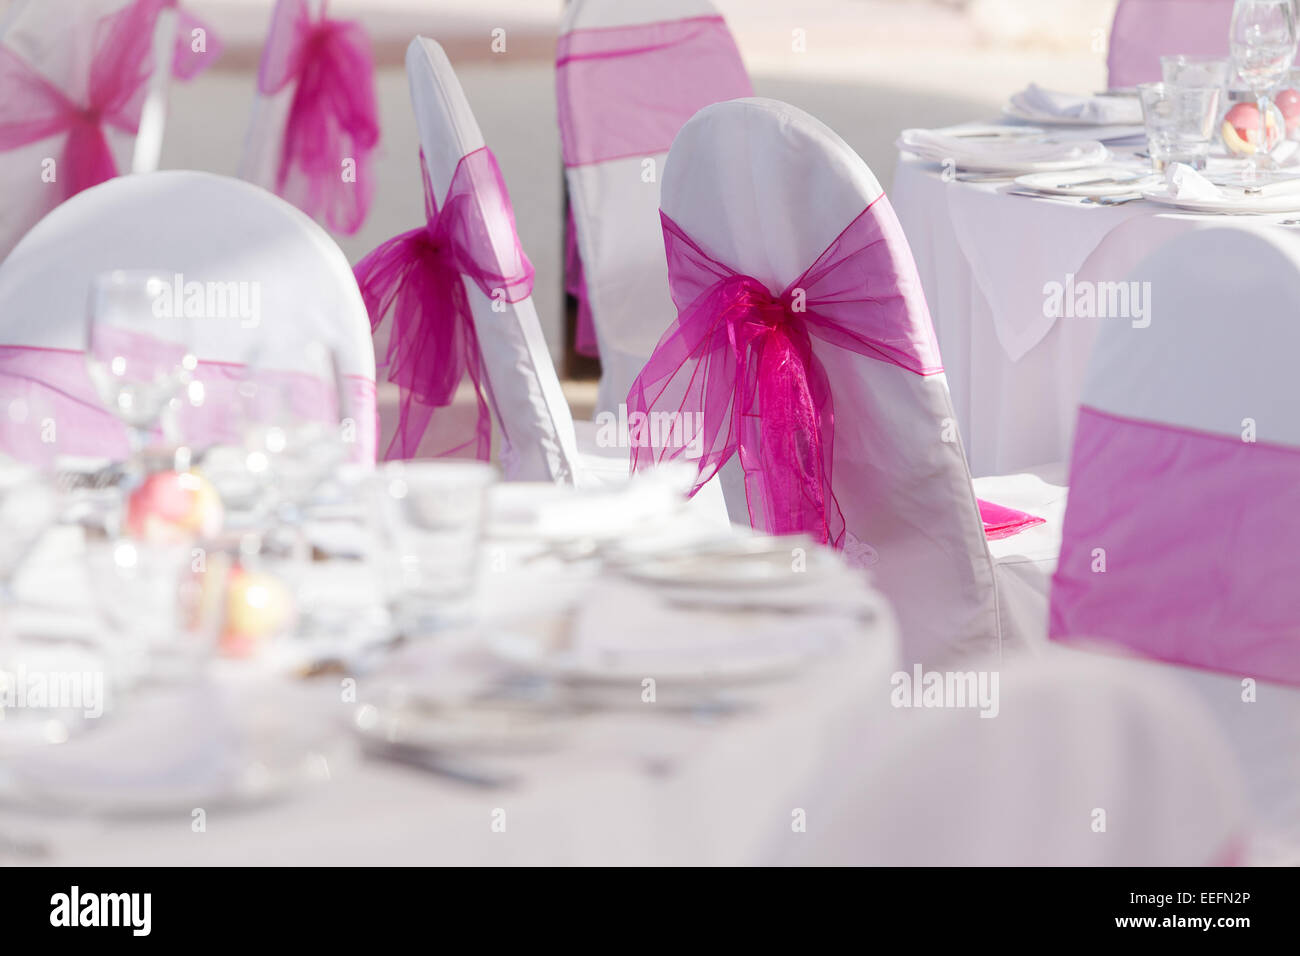 Wedding Table Setup Stock Photos & Wedding Table Setup Stock Images ...